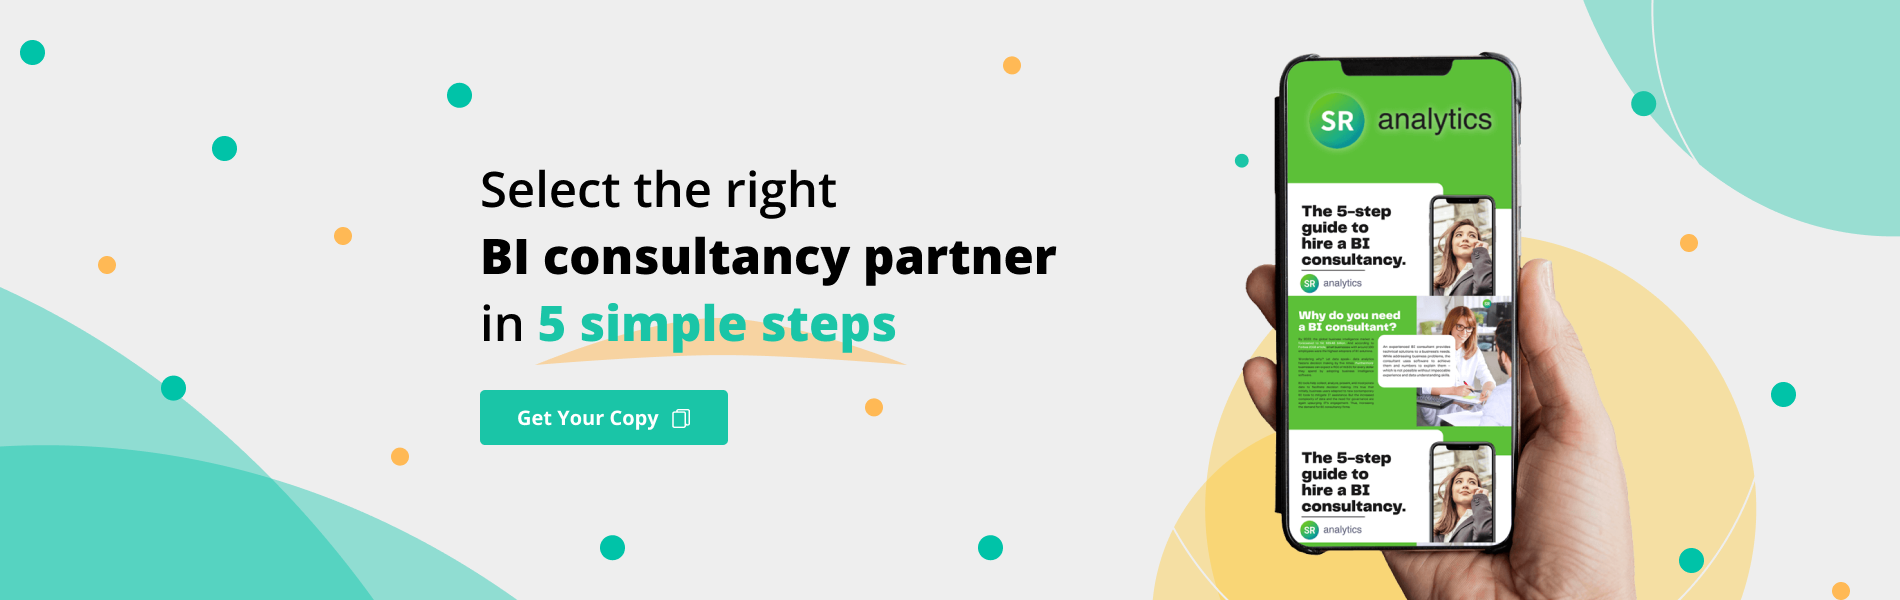 choose the right BI consulting partner